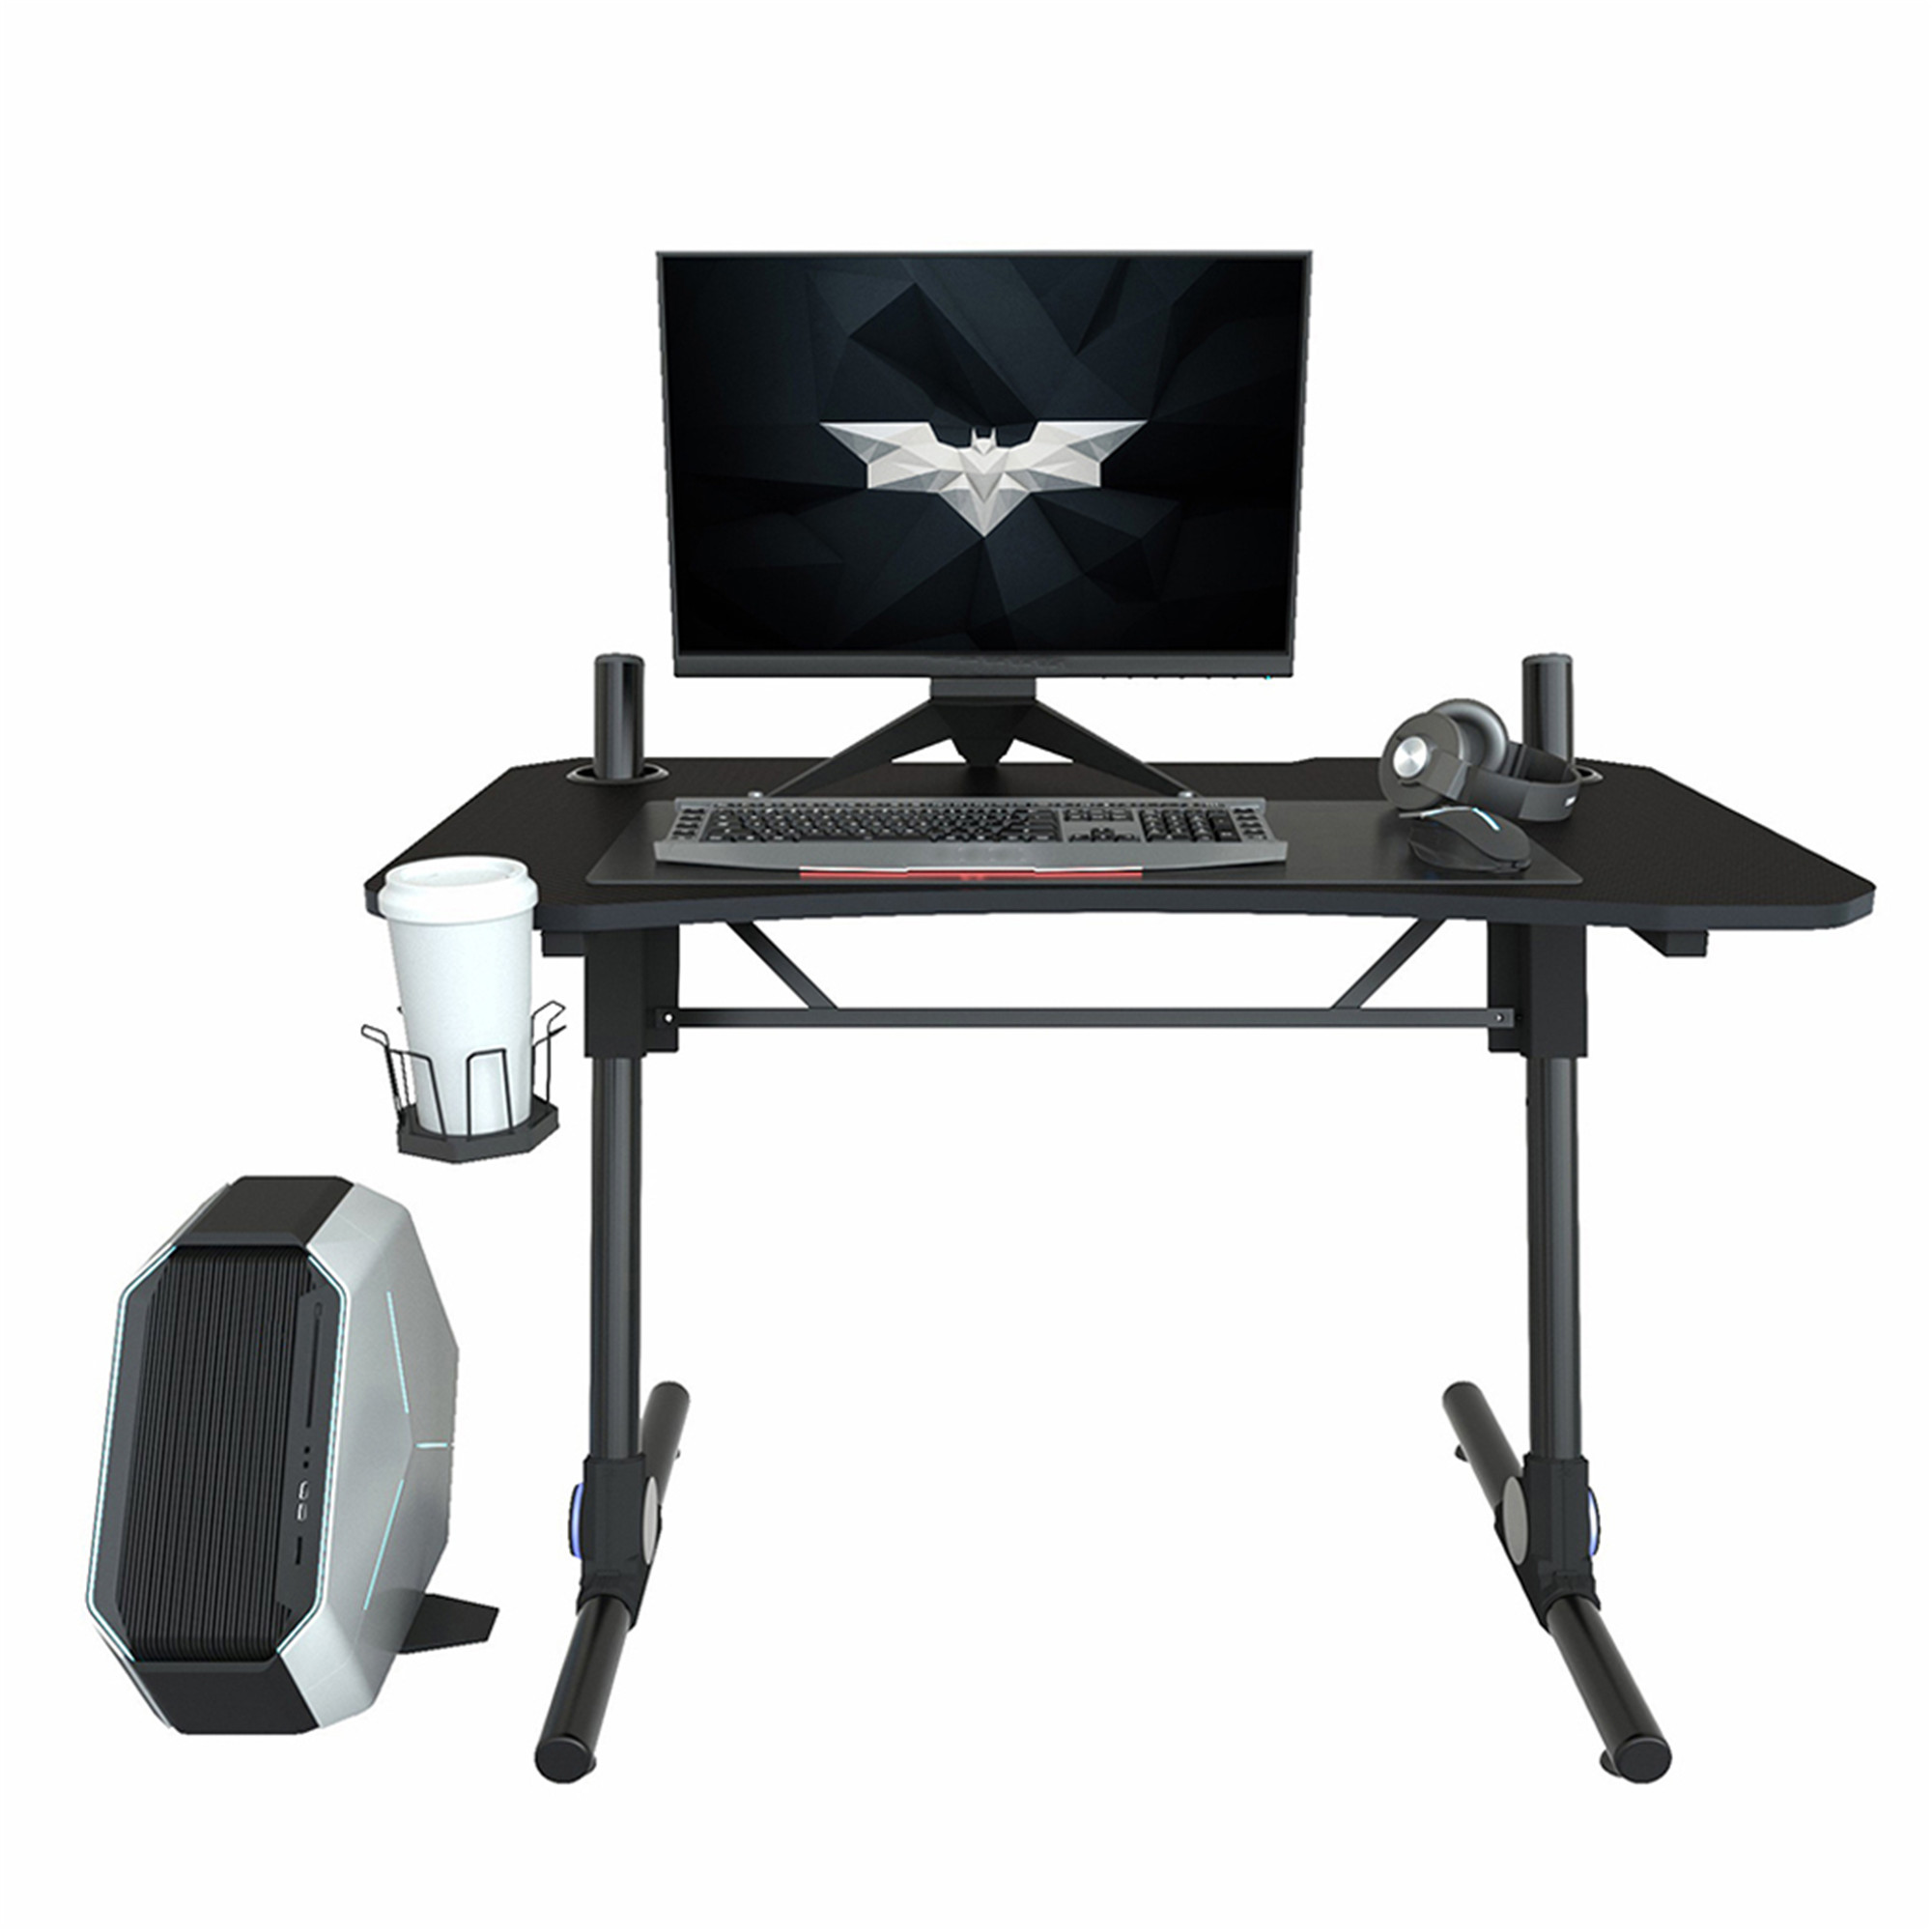 Gaming Desk With Cup Holder Home Office Work Station Height Adjustable Computer Gaming Table Walmart Com Walmart Com